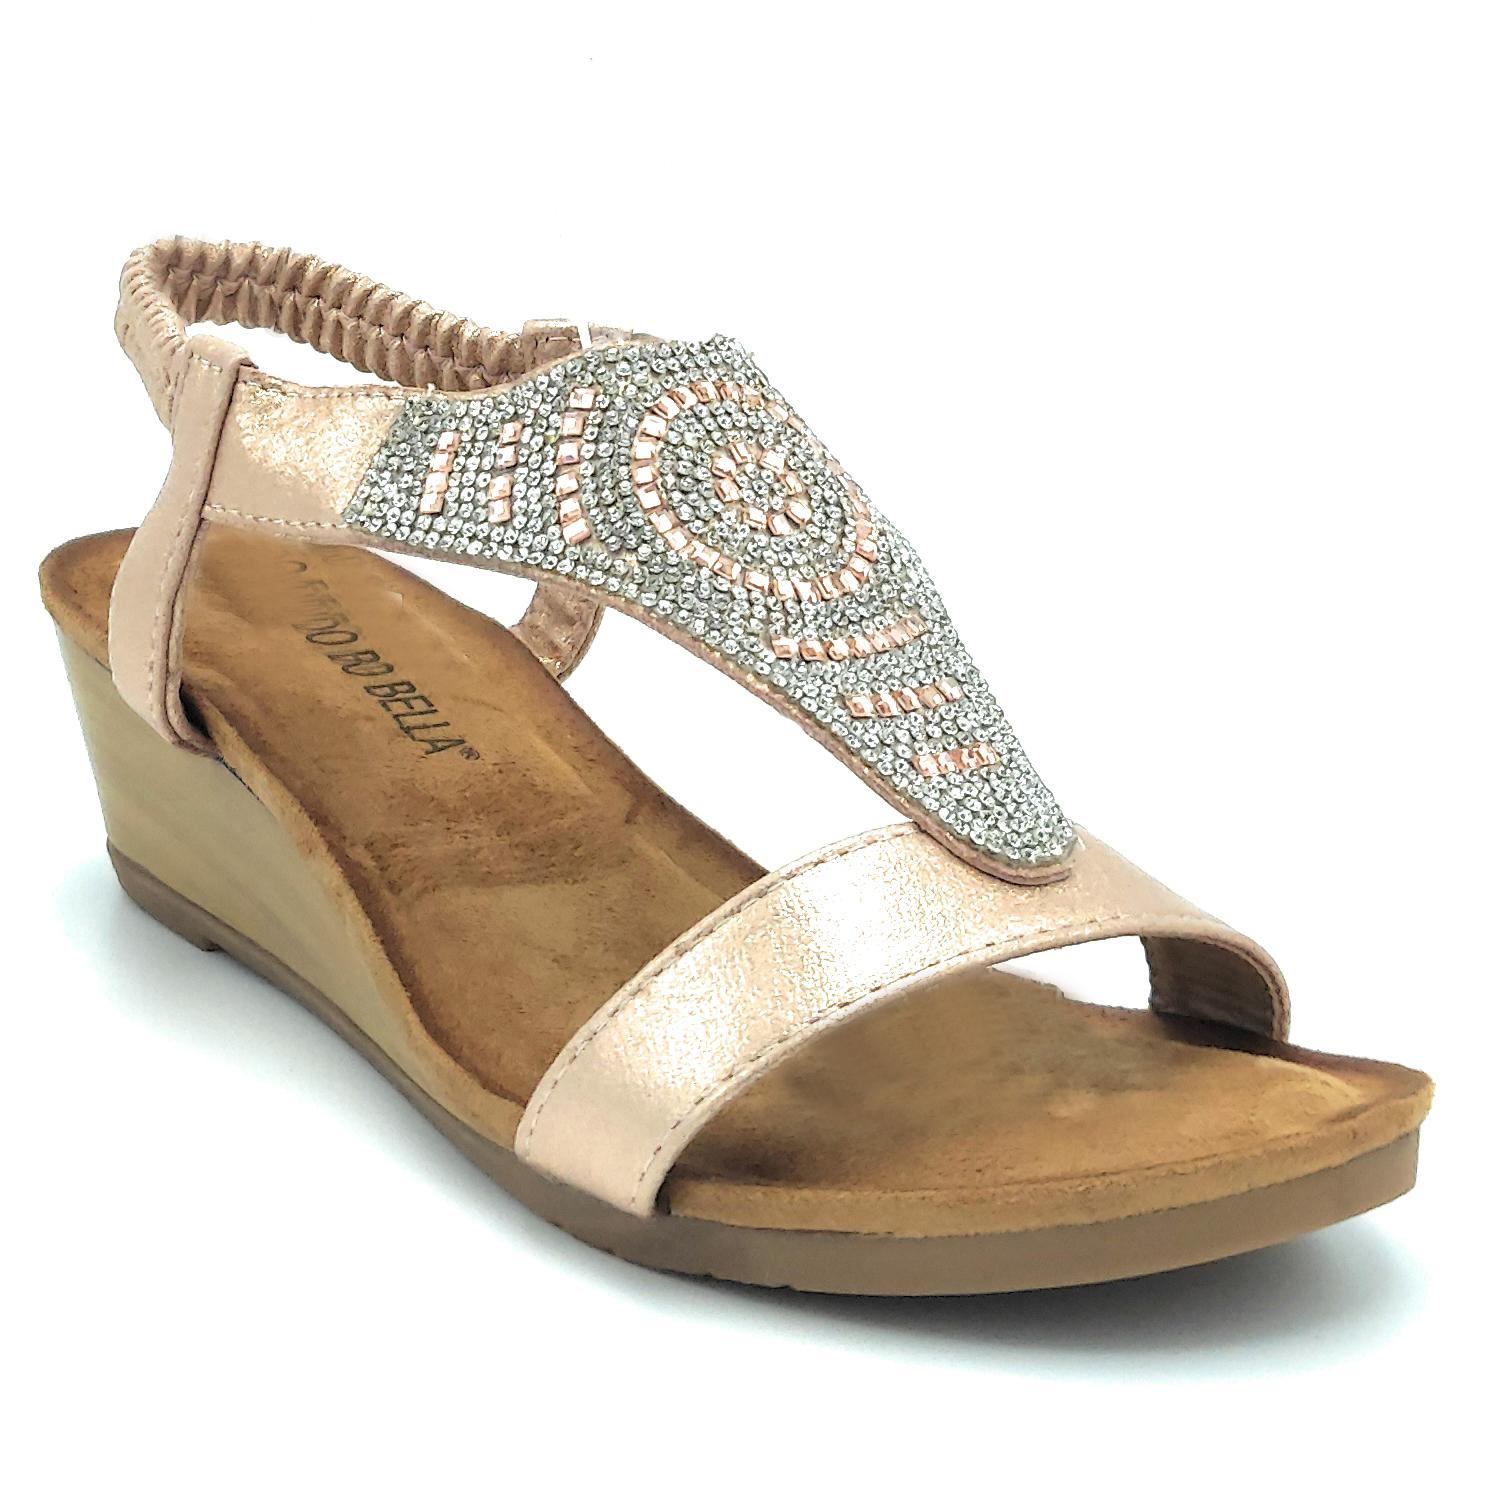 Sandals shoes jewel moda mare positano style comfortable low summer woman